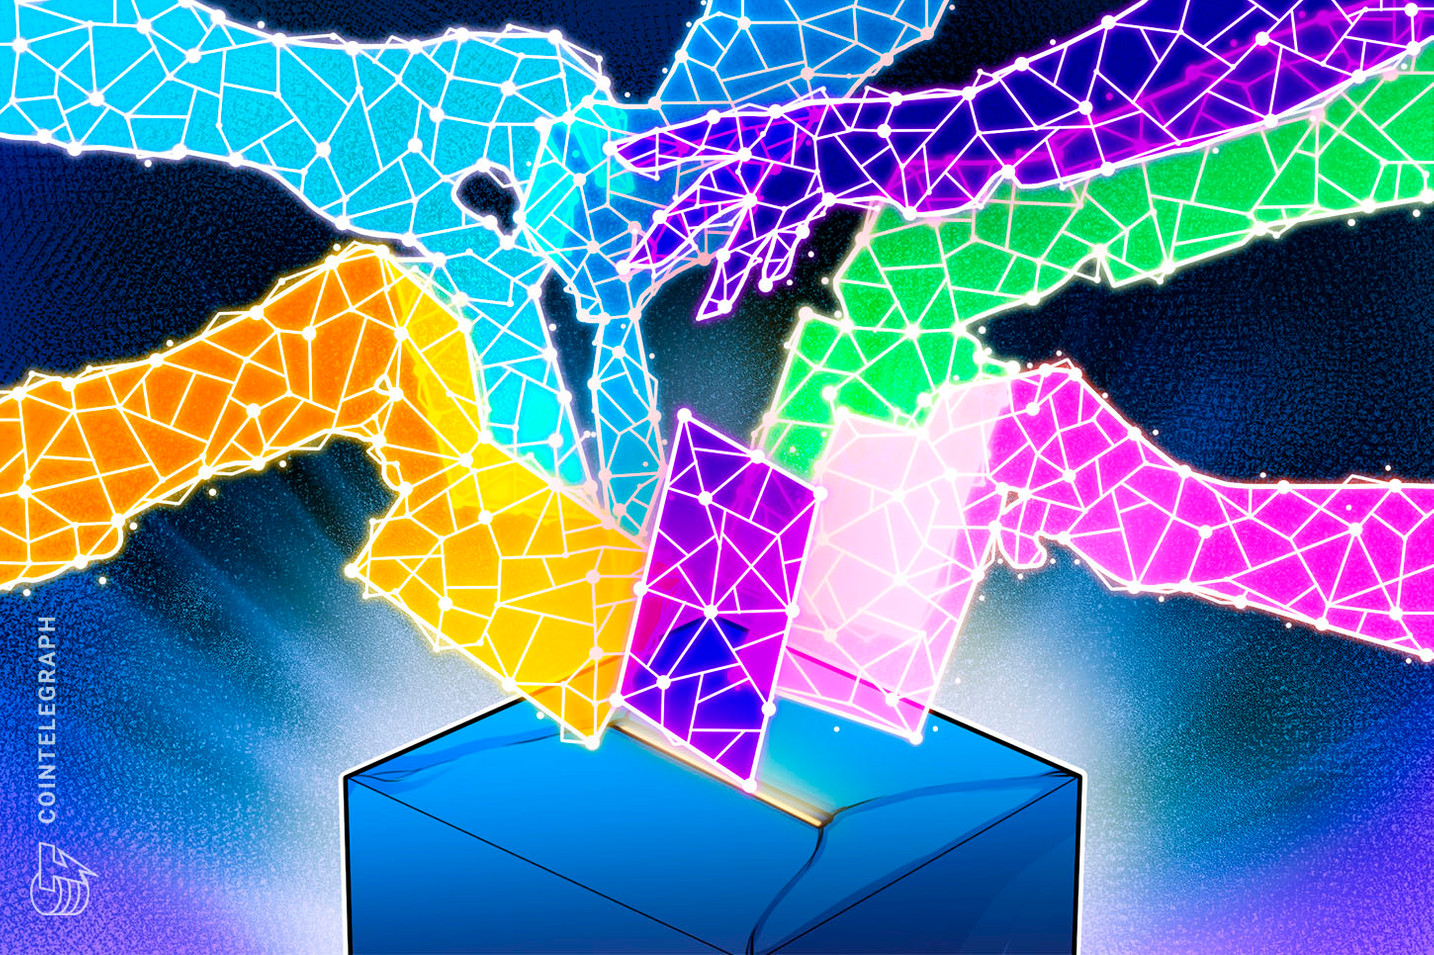 This Blockchain Voting App Could Change Elections Forever